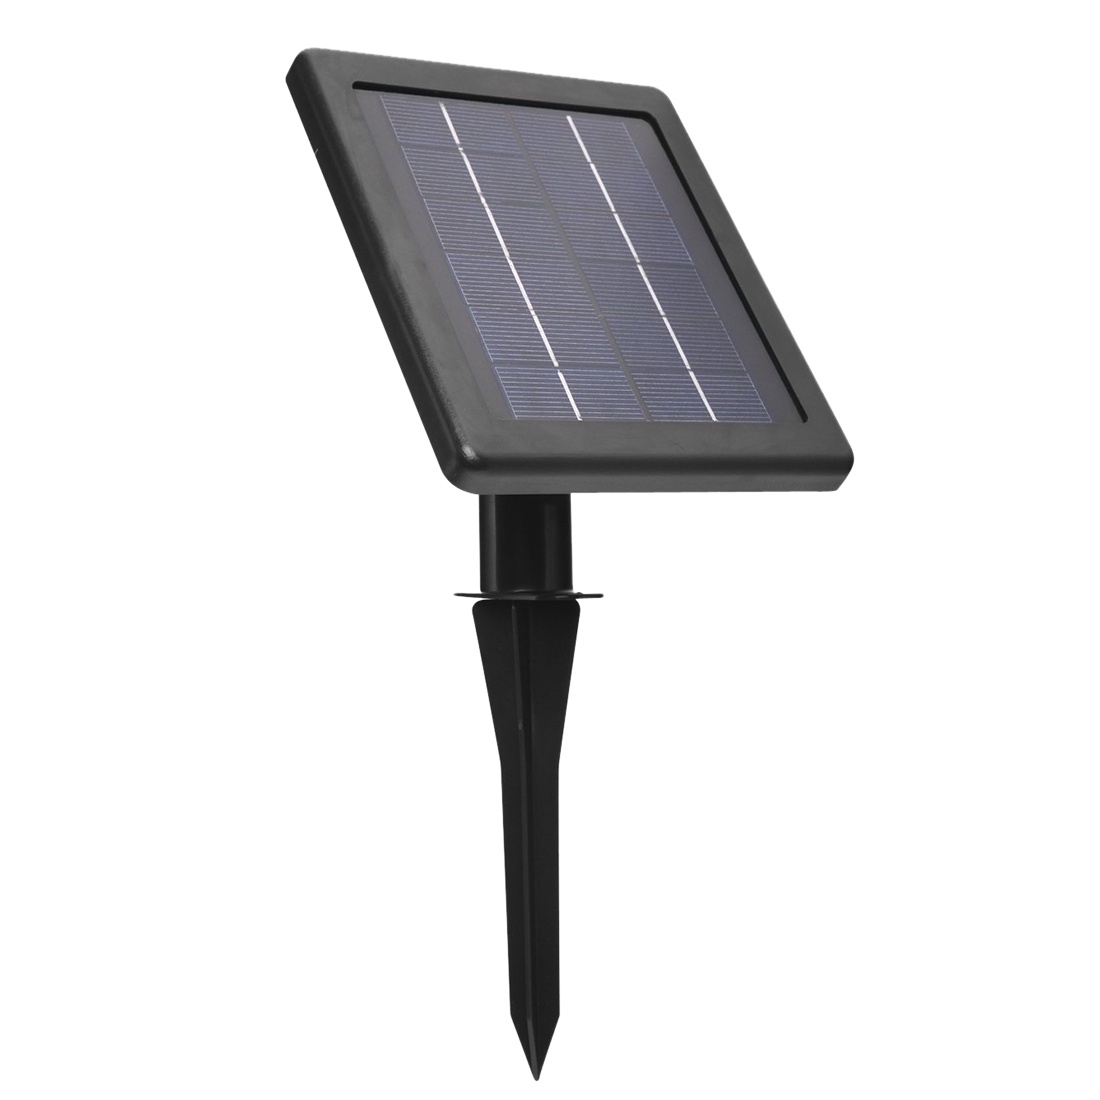 Rechargeable Waterproof Solar Powered 30 LED Spot Light White Lamp with Lithium Battery Inside for Lawn, Garden, Road Hotel etc.<br>